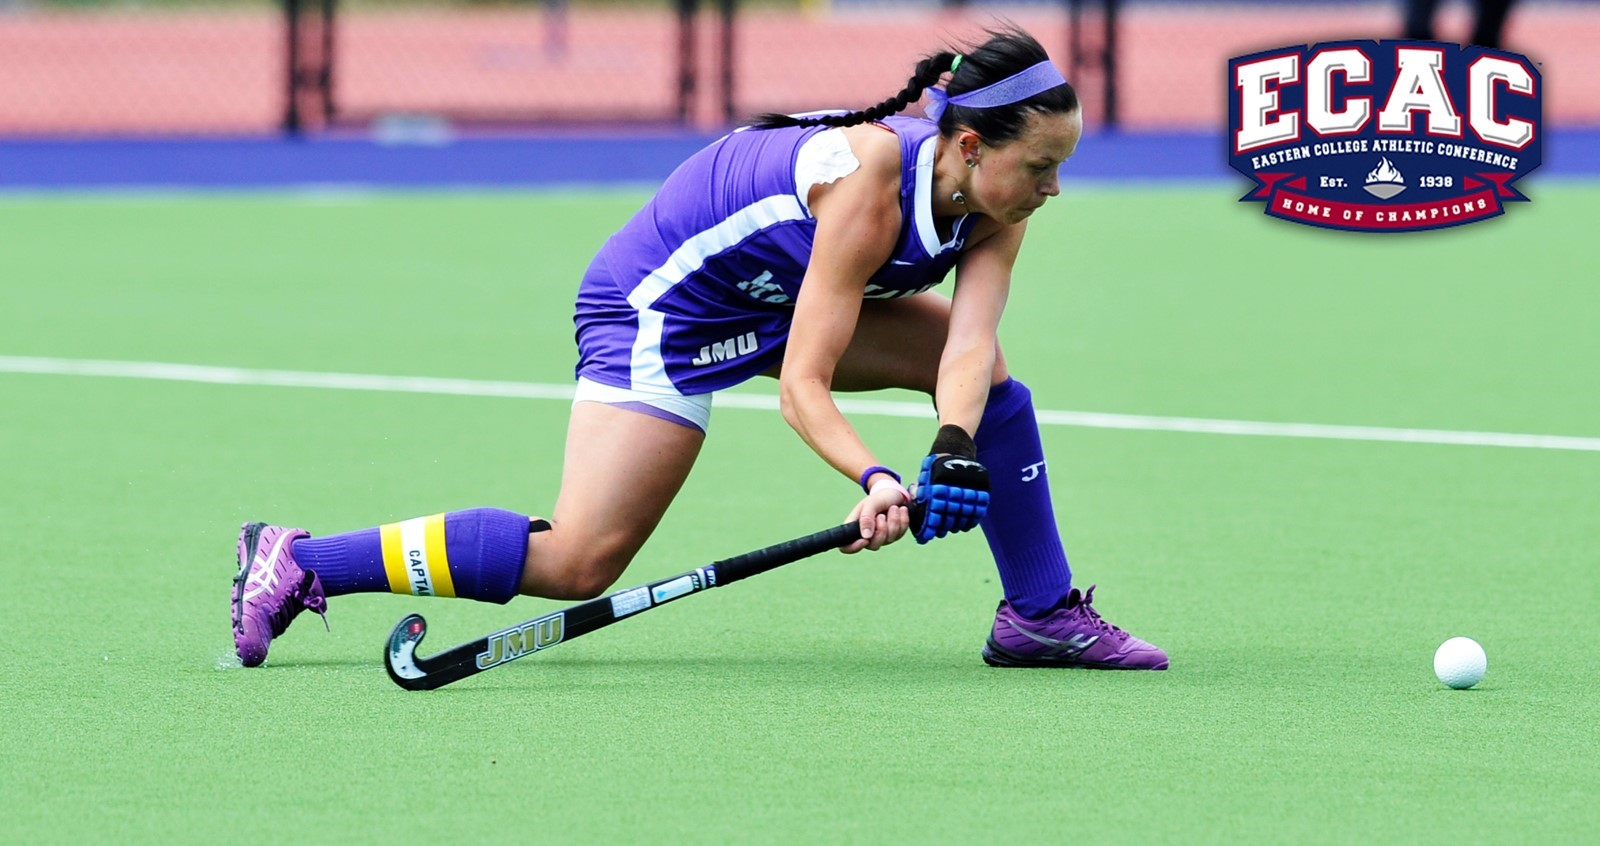 Field Hockey: Allaband Named to ECAC Division I All-Star Second Team